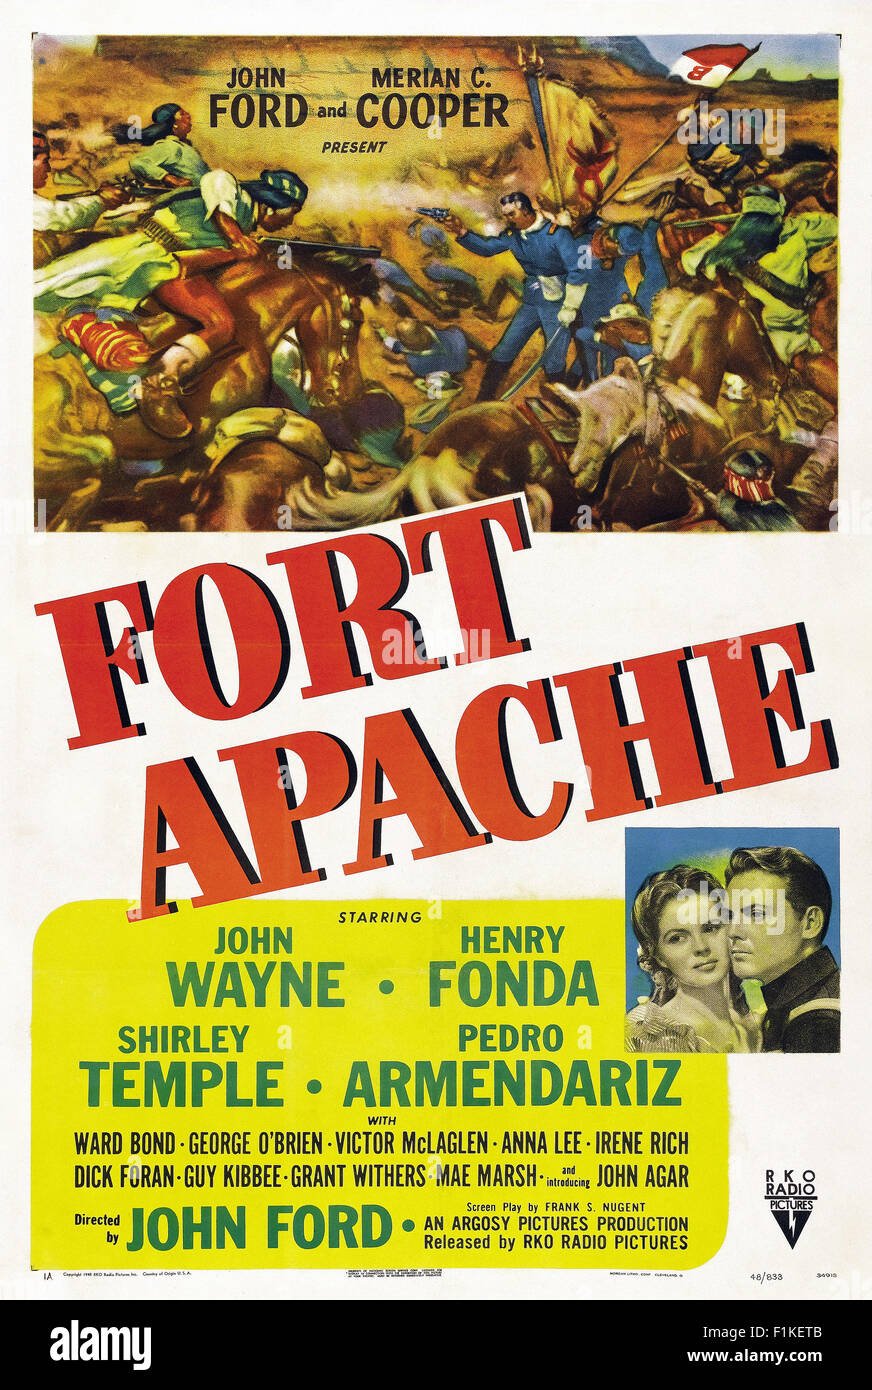 Fort Apache 001 - Movie Poster - Stock Image